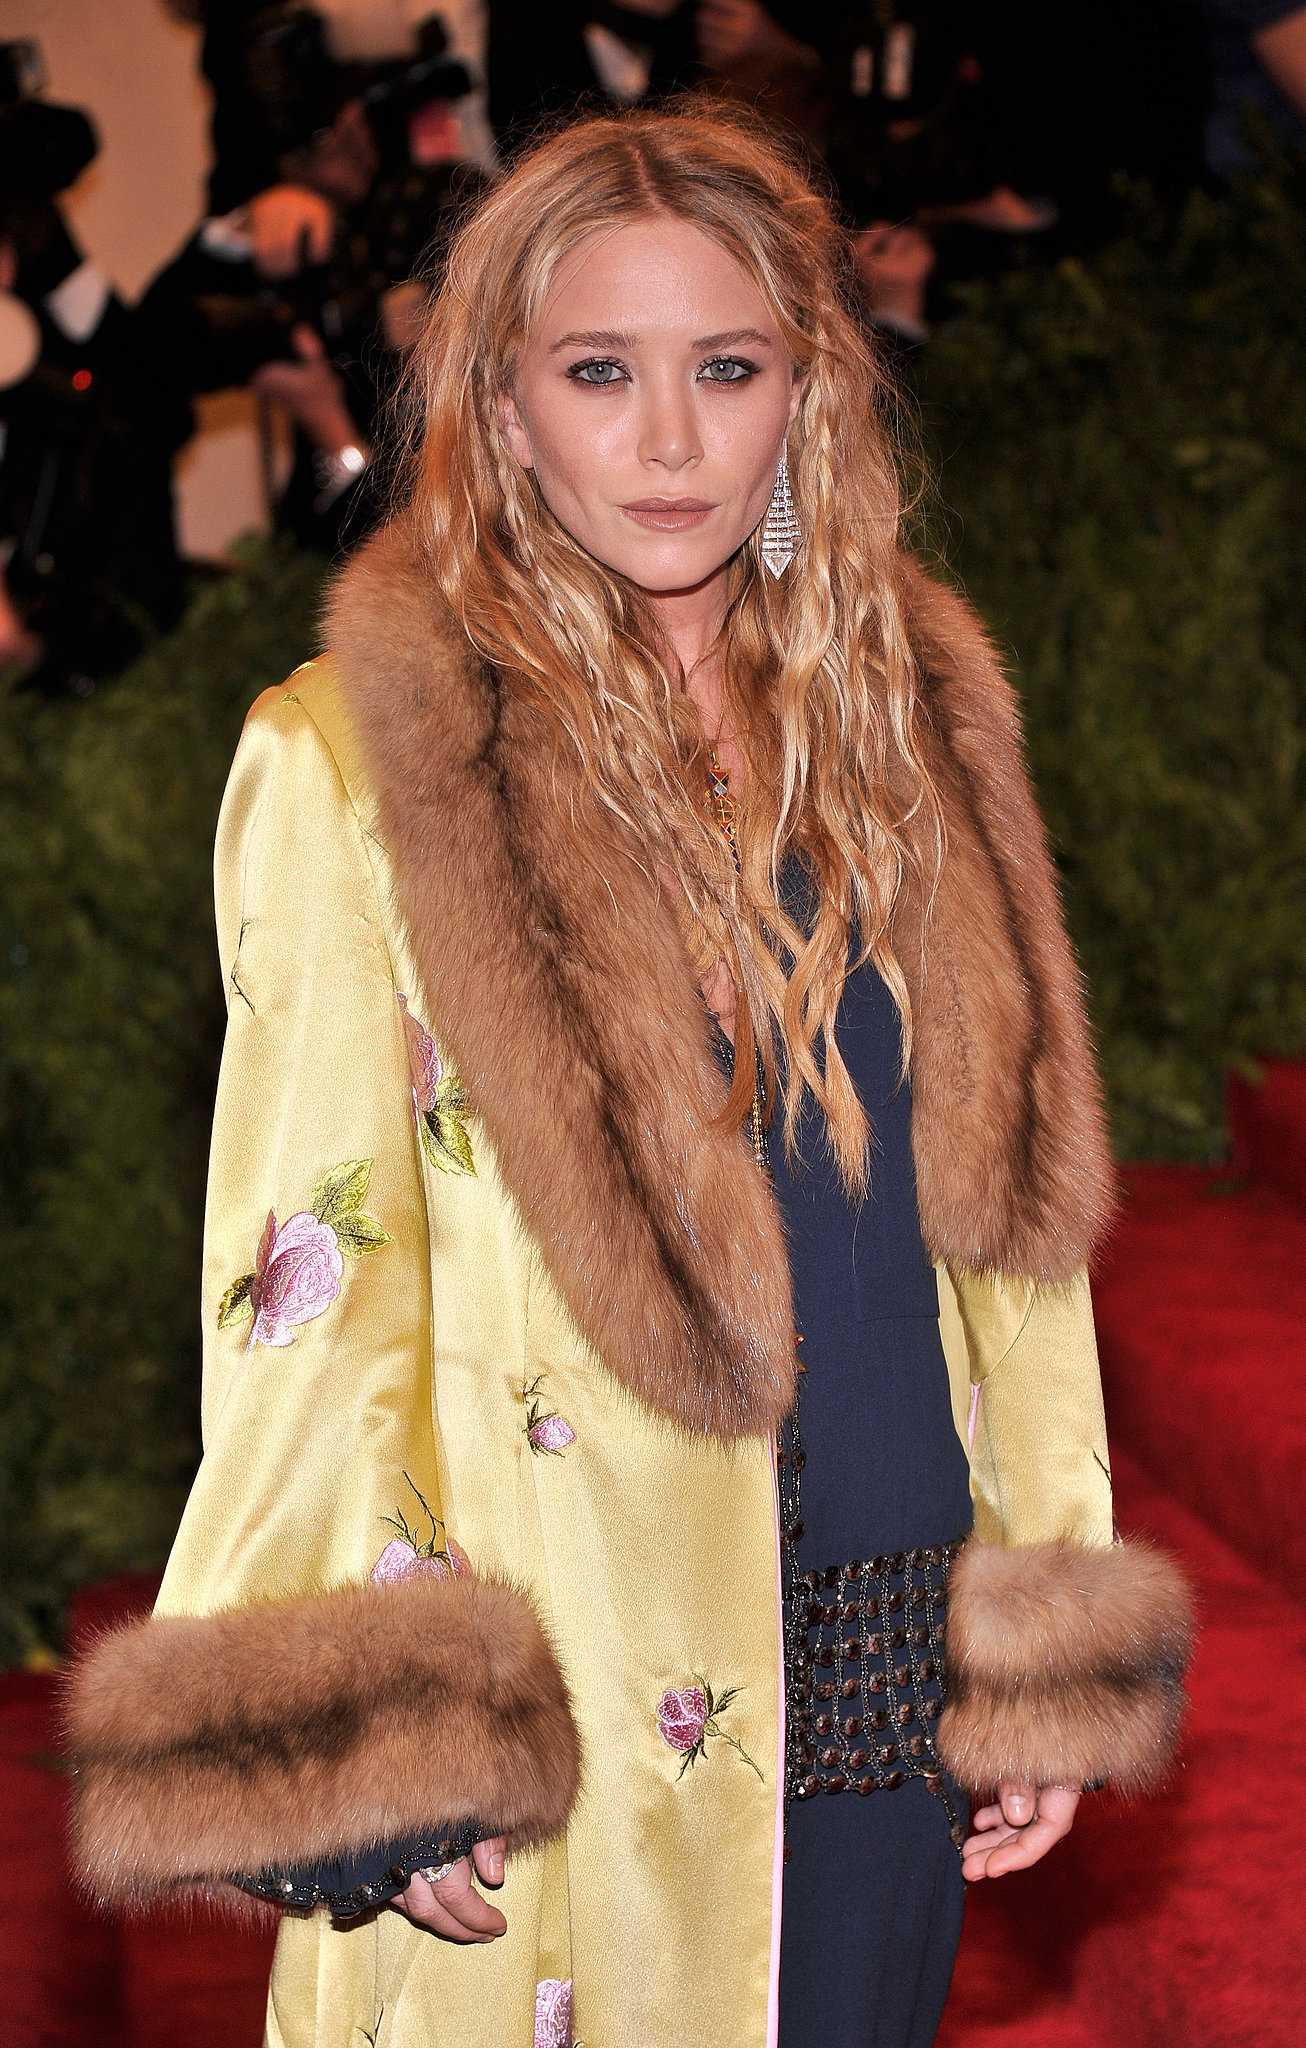 A headful of random braids added to Mary-Kate Olsen's beachy waves.